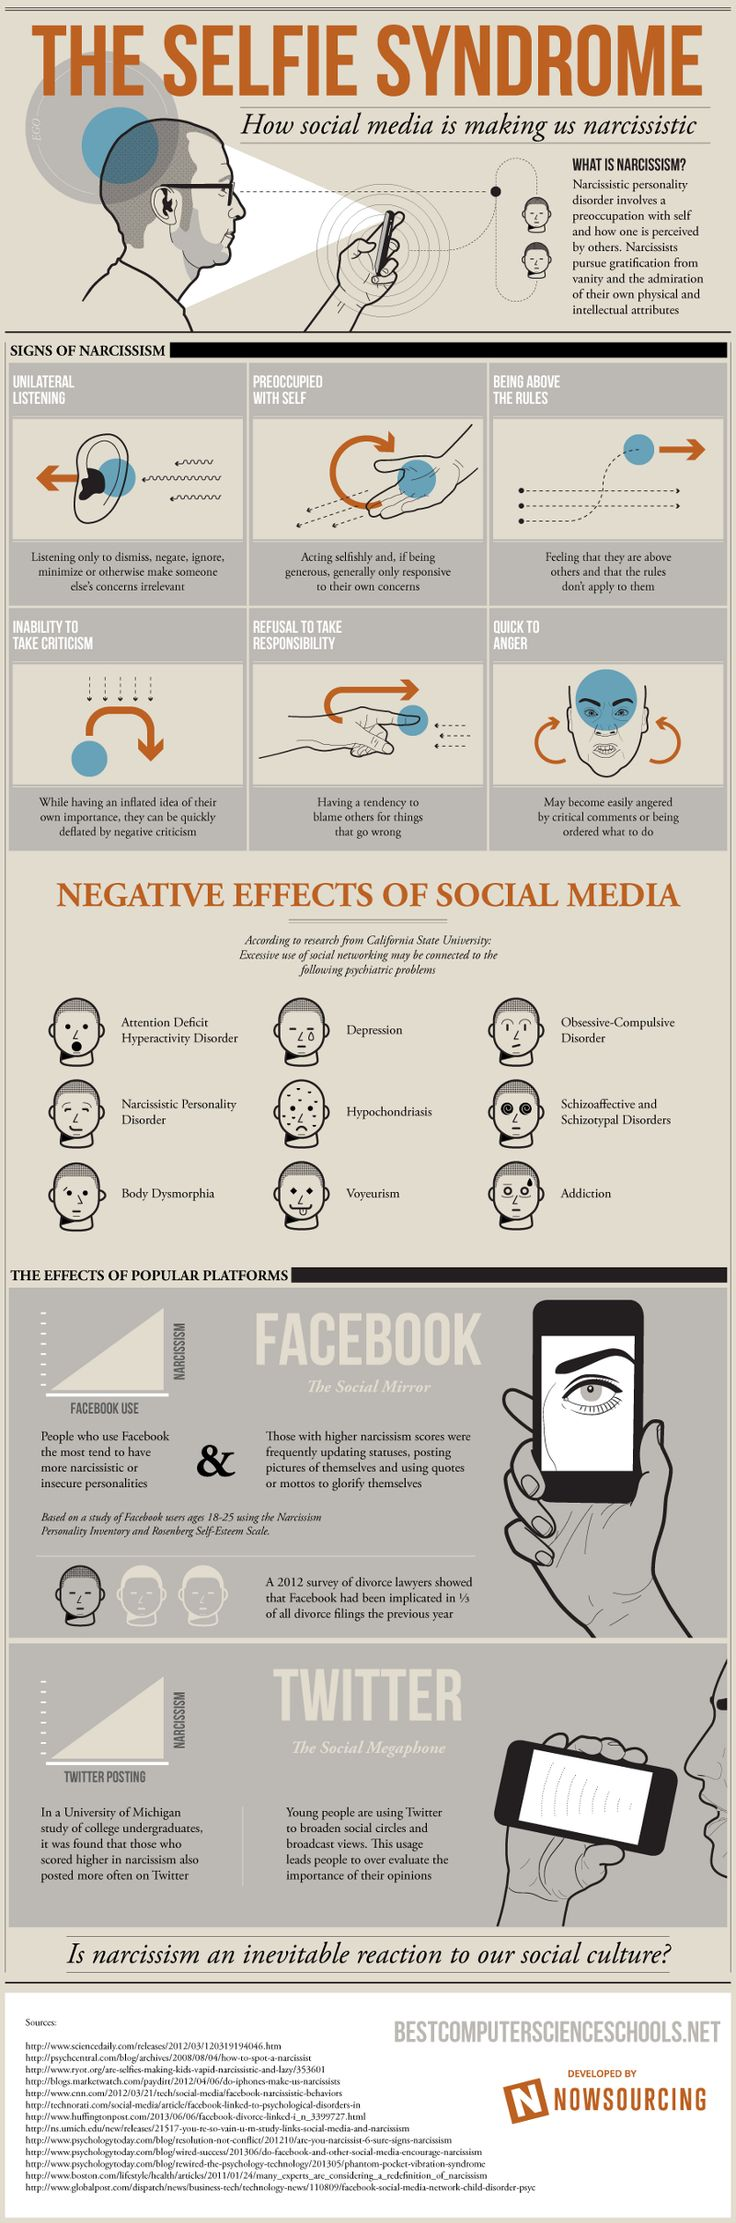 social-media-make-us-narcissistic